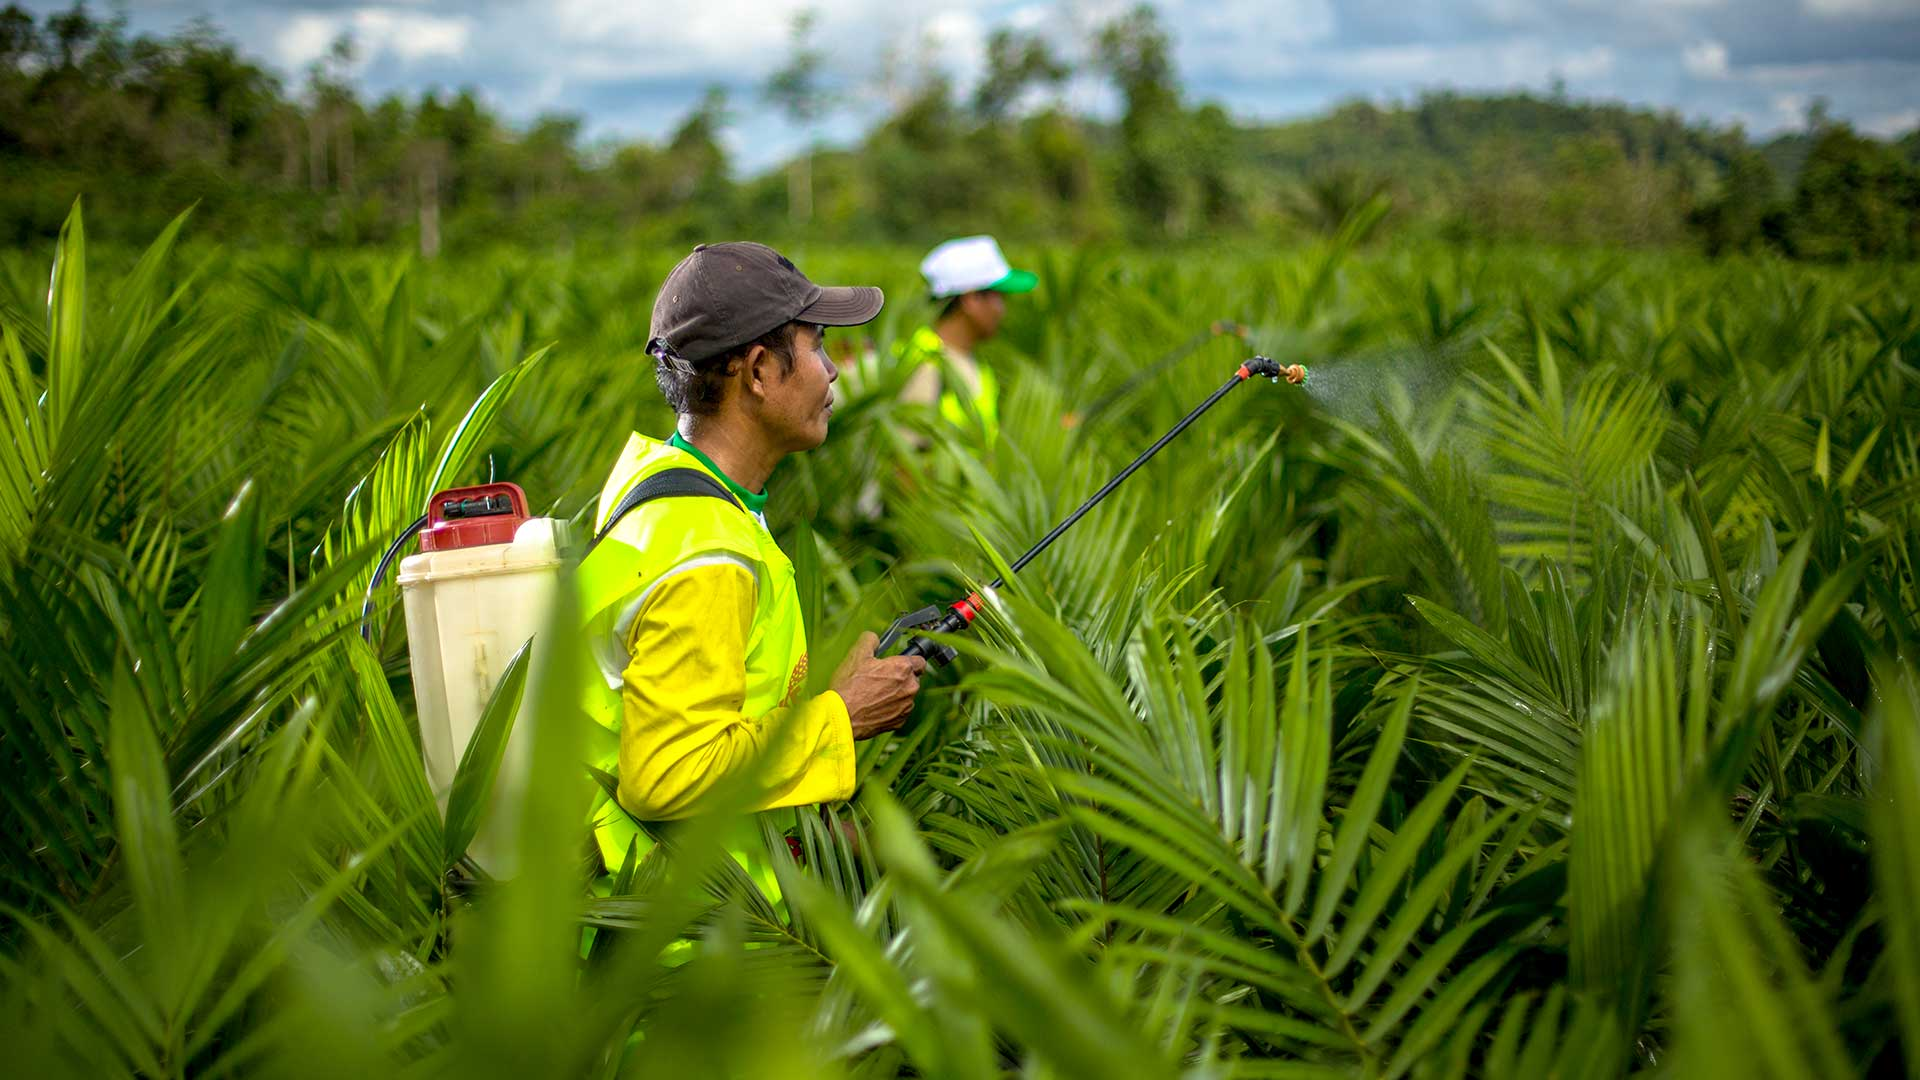 pestel analysis oil palm plantation Exploitative labor practices in the global palm oil of palm oil to the global economy the analysis demonstrates onoilpalmplantations.